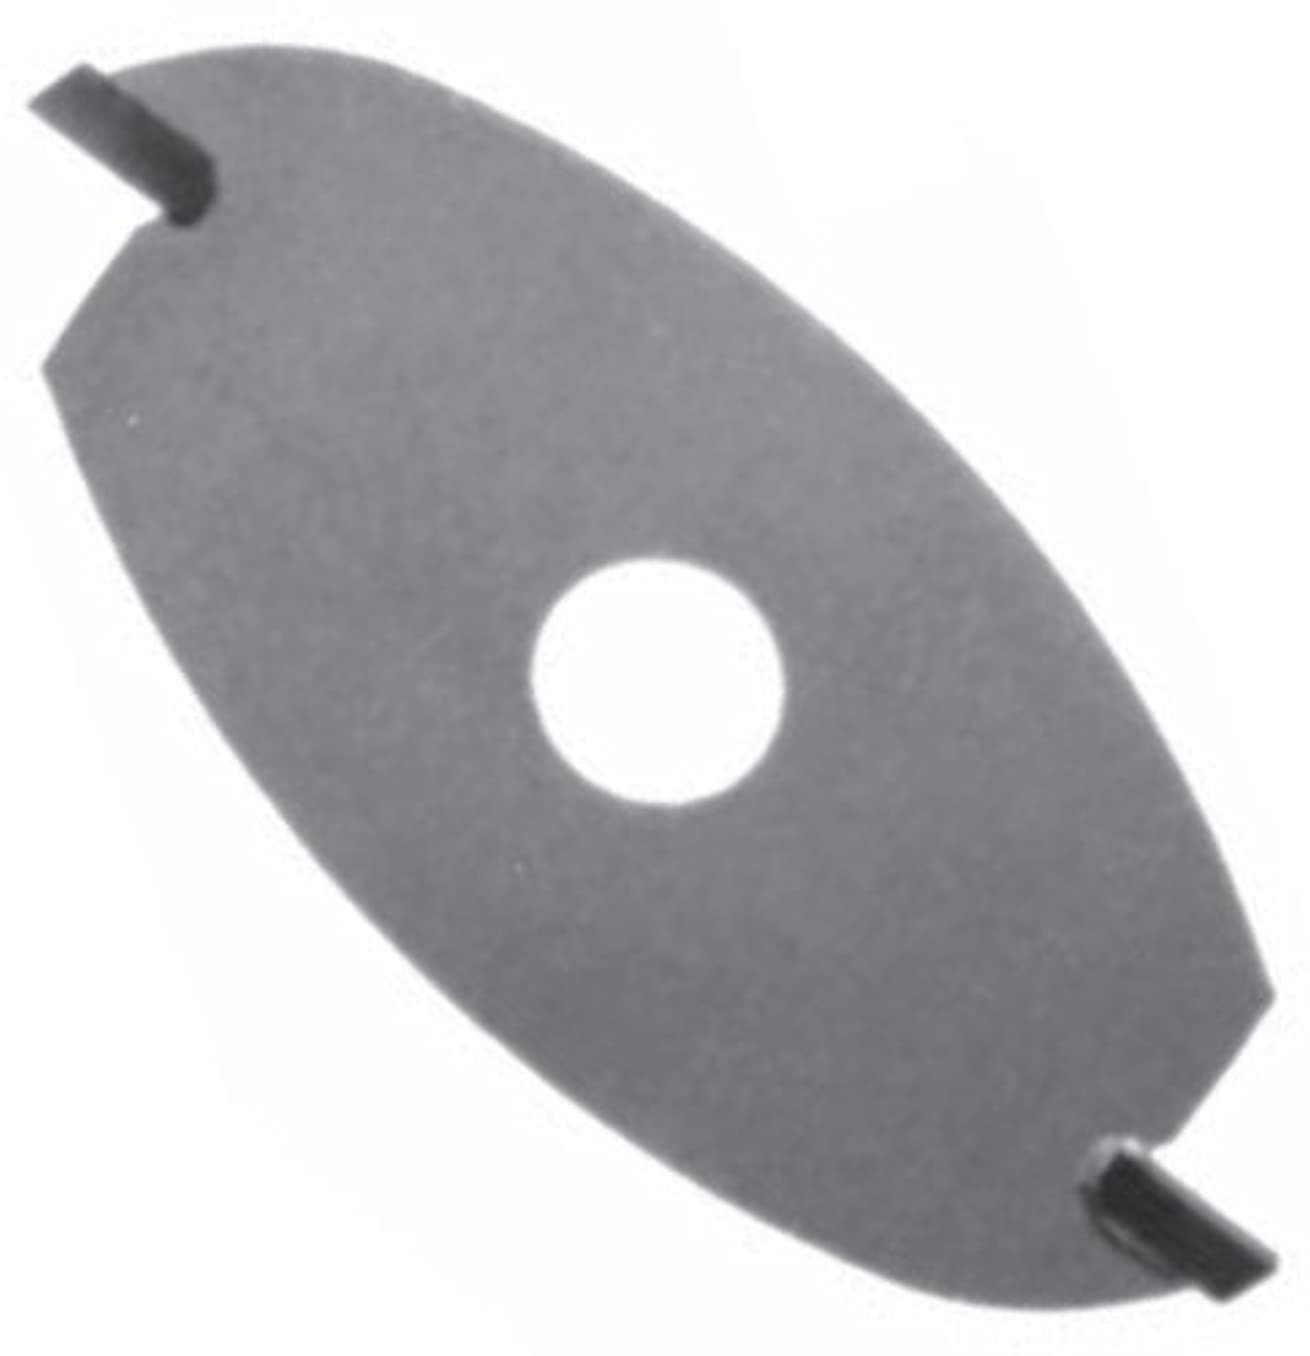 Southeast Tool STOP062 2 Wing Cutter for Top Master Machine, 2-1/2